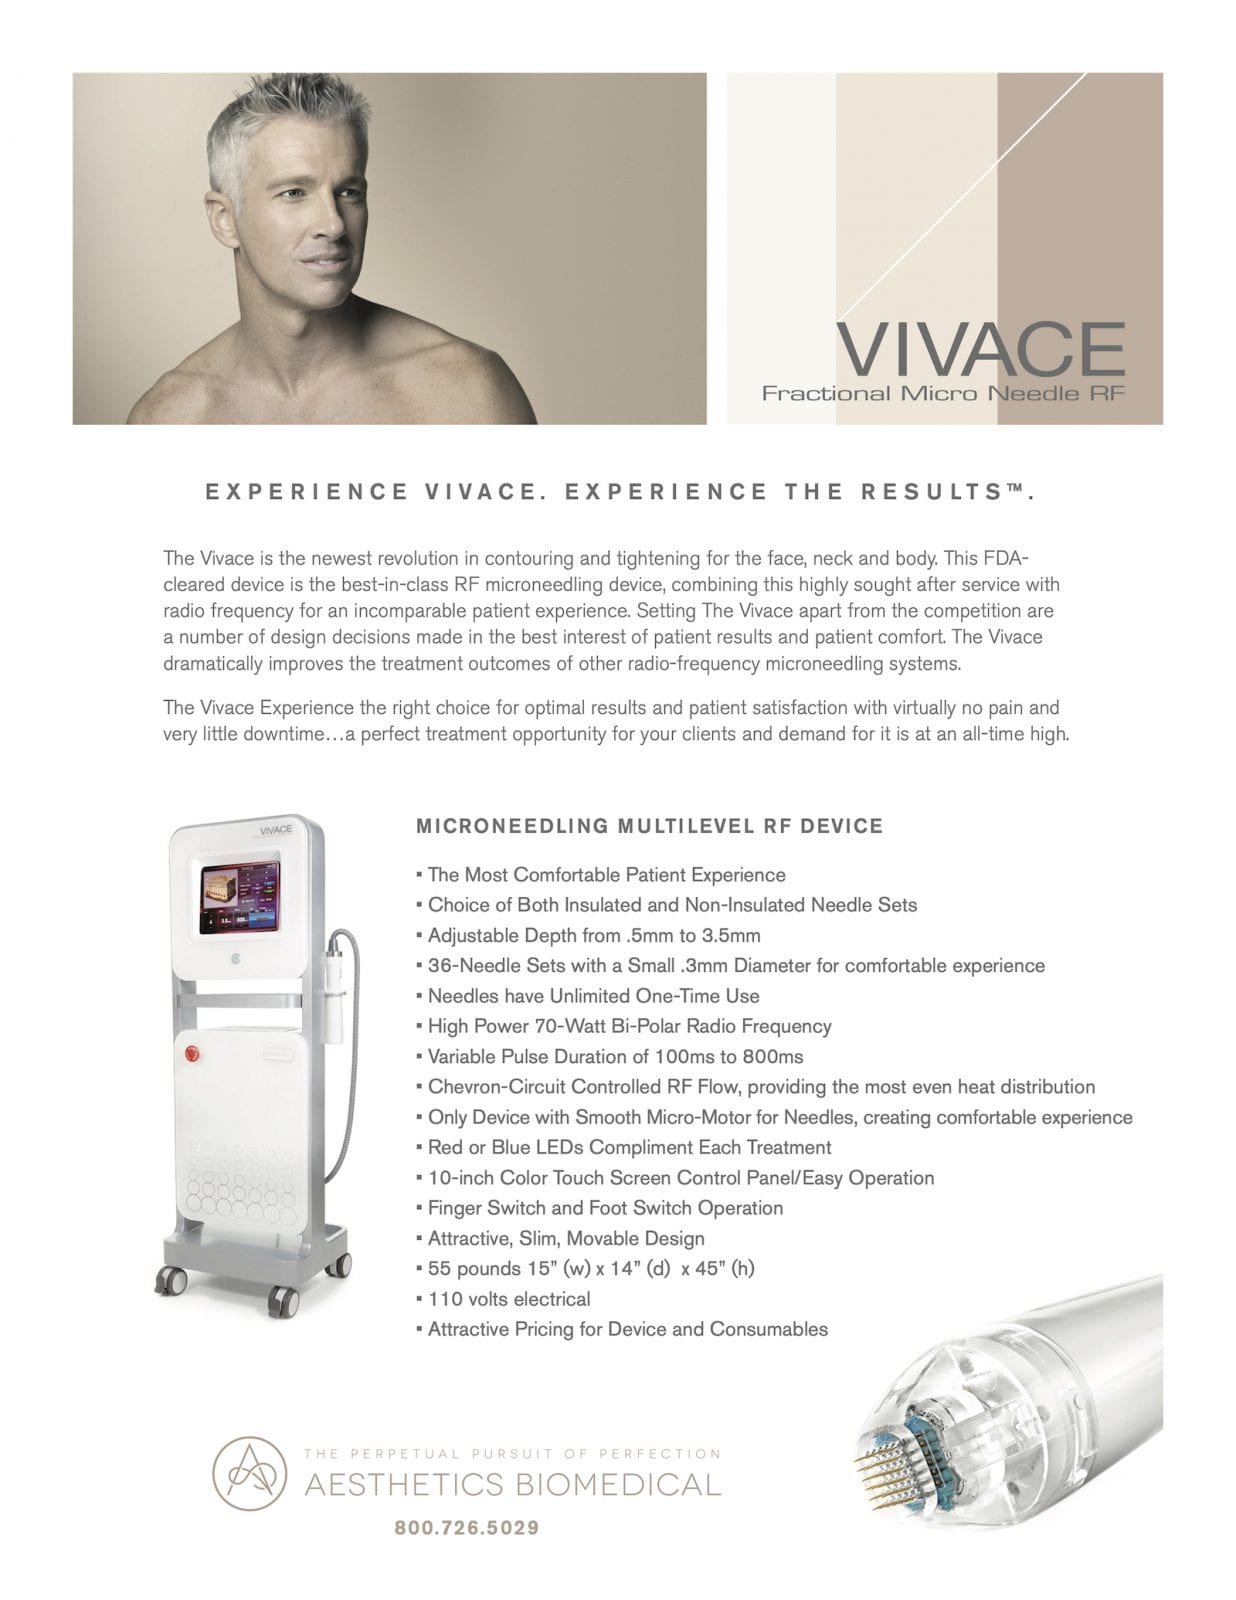 https://www.rosecosmeticsurgery.com/wp-content/uploads/2020/04/Vivace-Not-just-for-woman-scaled.jpg